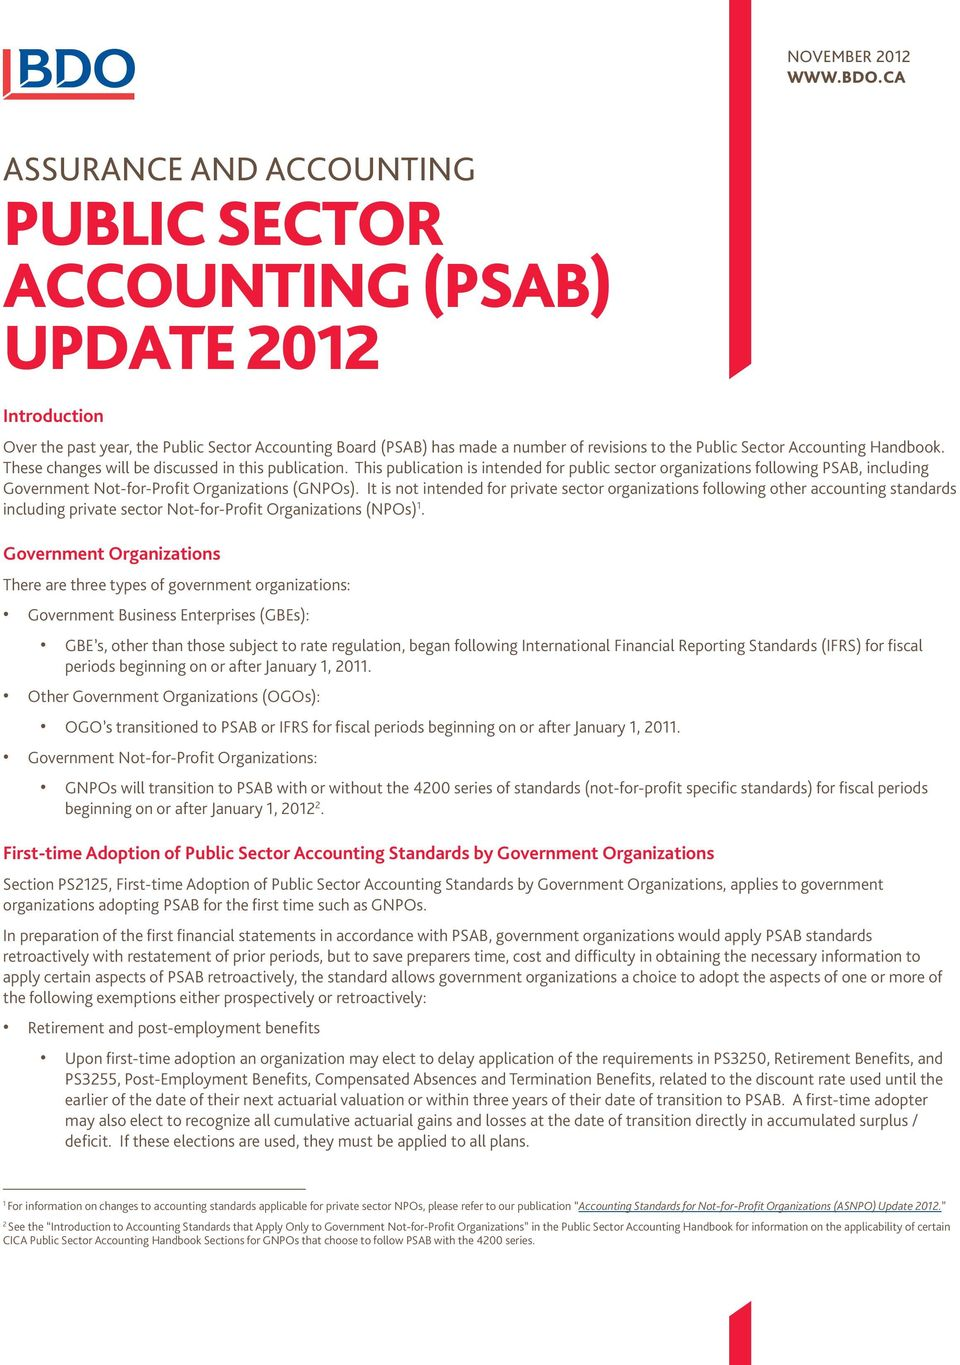 Accounting Handbook. These changes will be discussed in this publication.